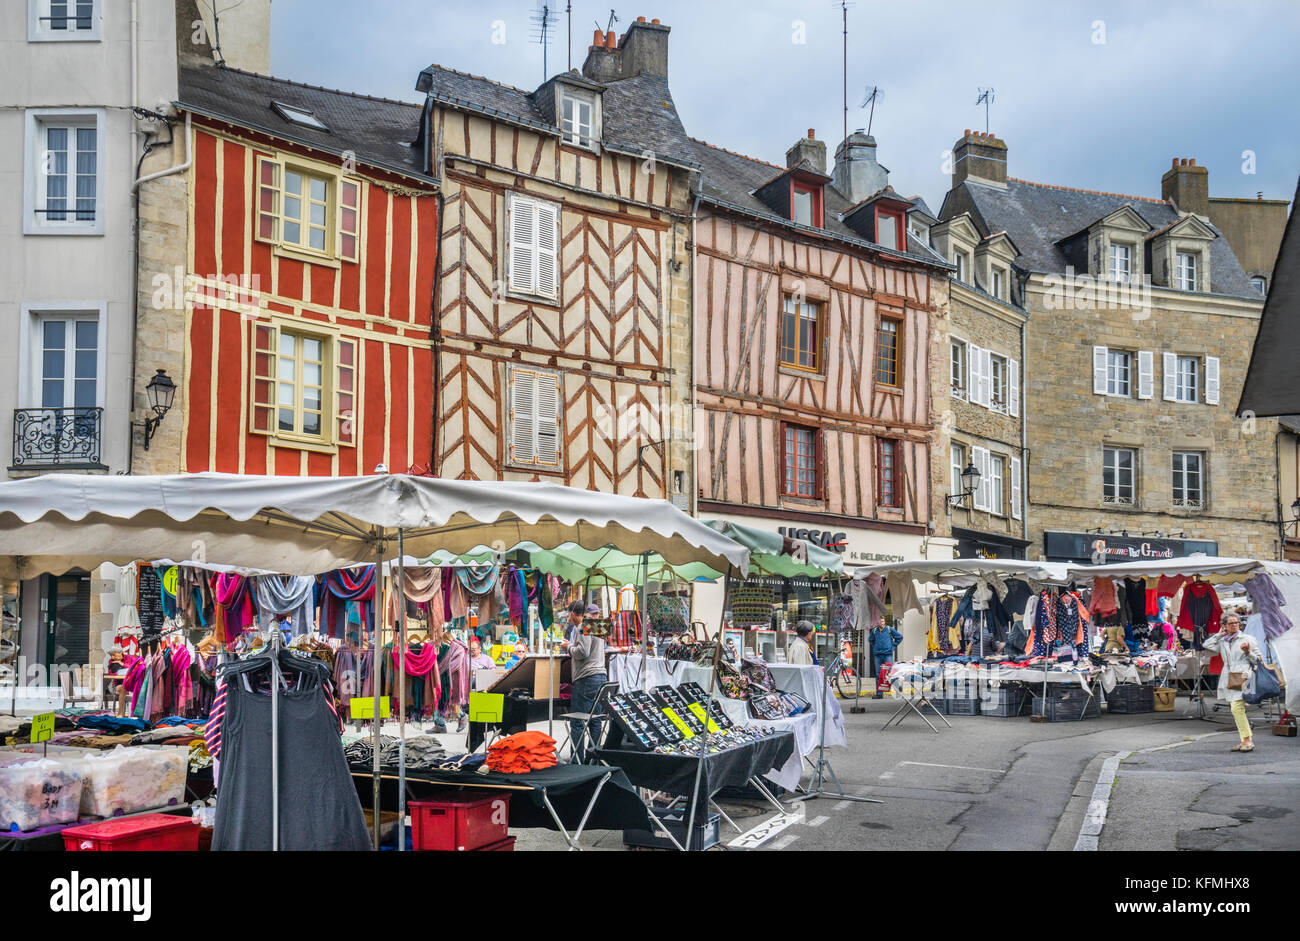 France, Brittany, Morbihan, Vannes, Wednesday Market at Place de Lices - Stock Image